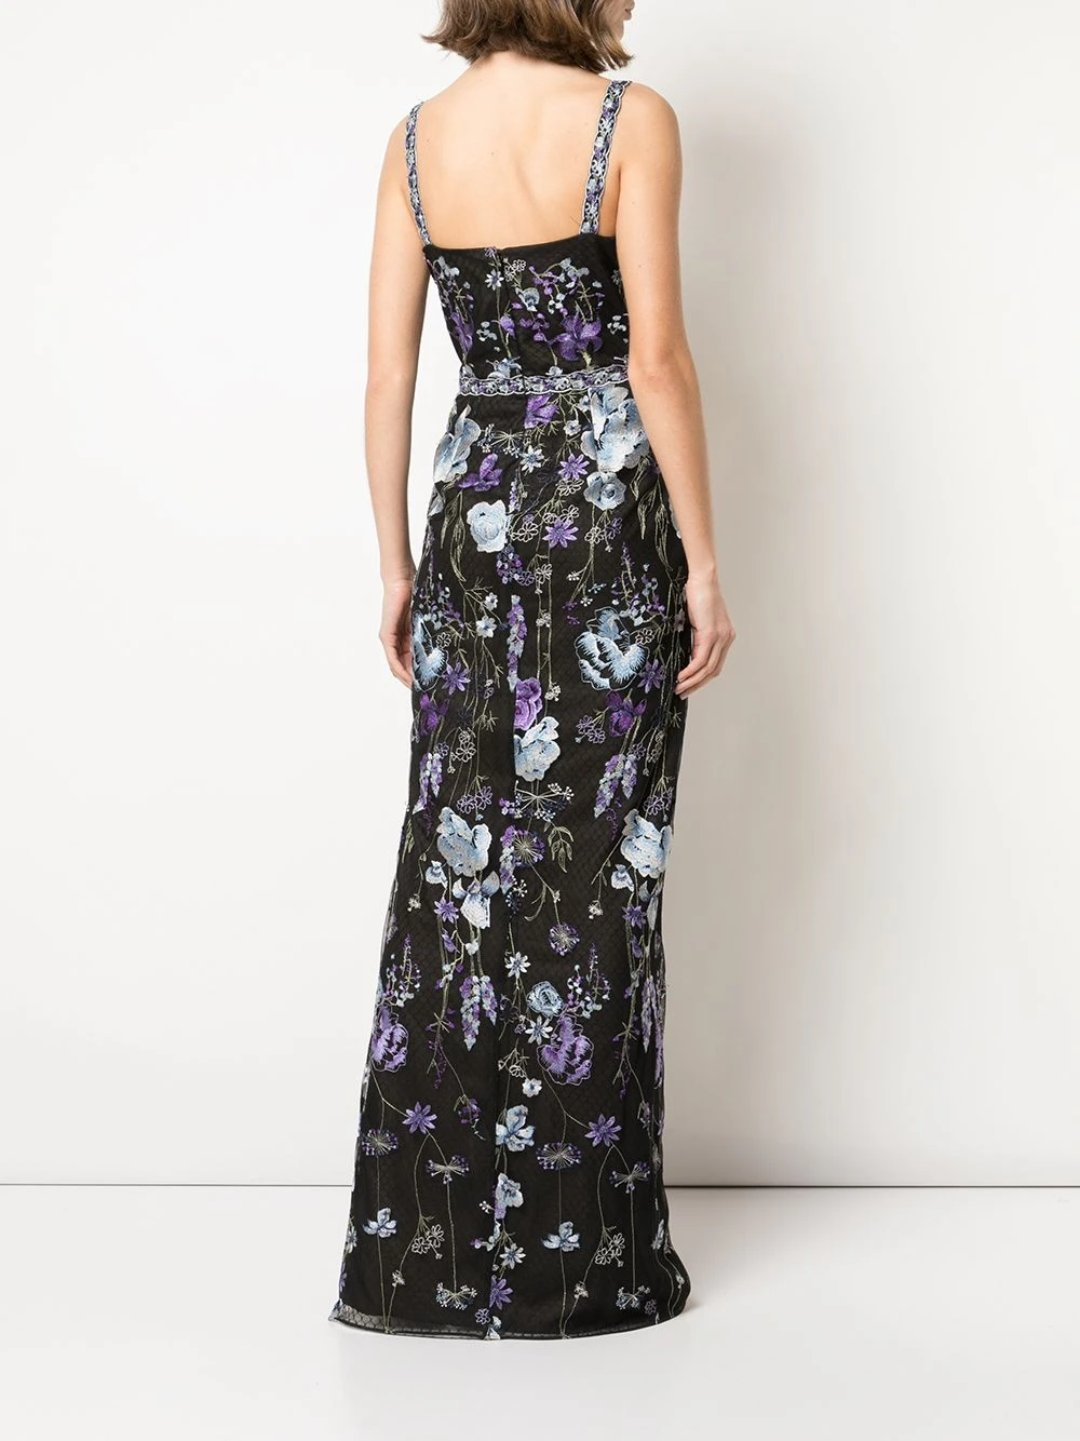 Scoop Neck Open Back Slim Column Gown.